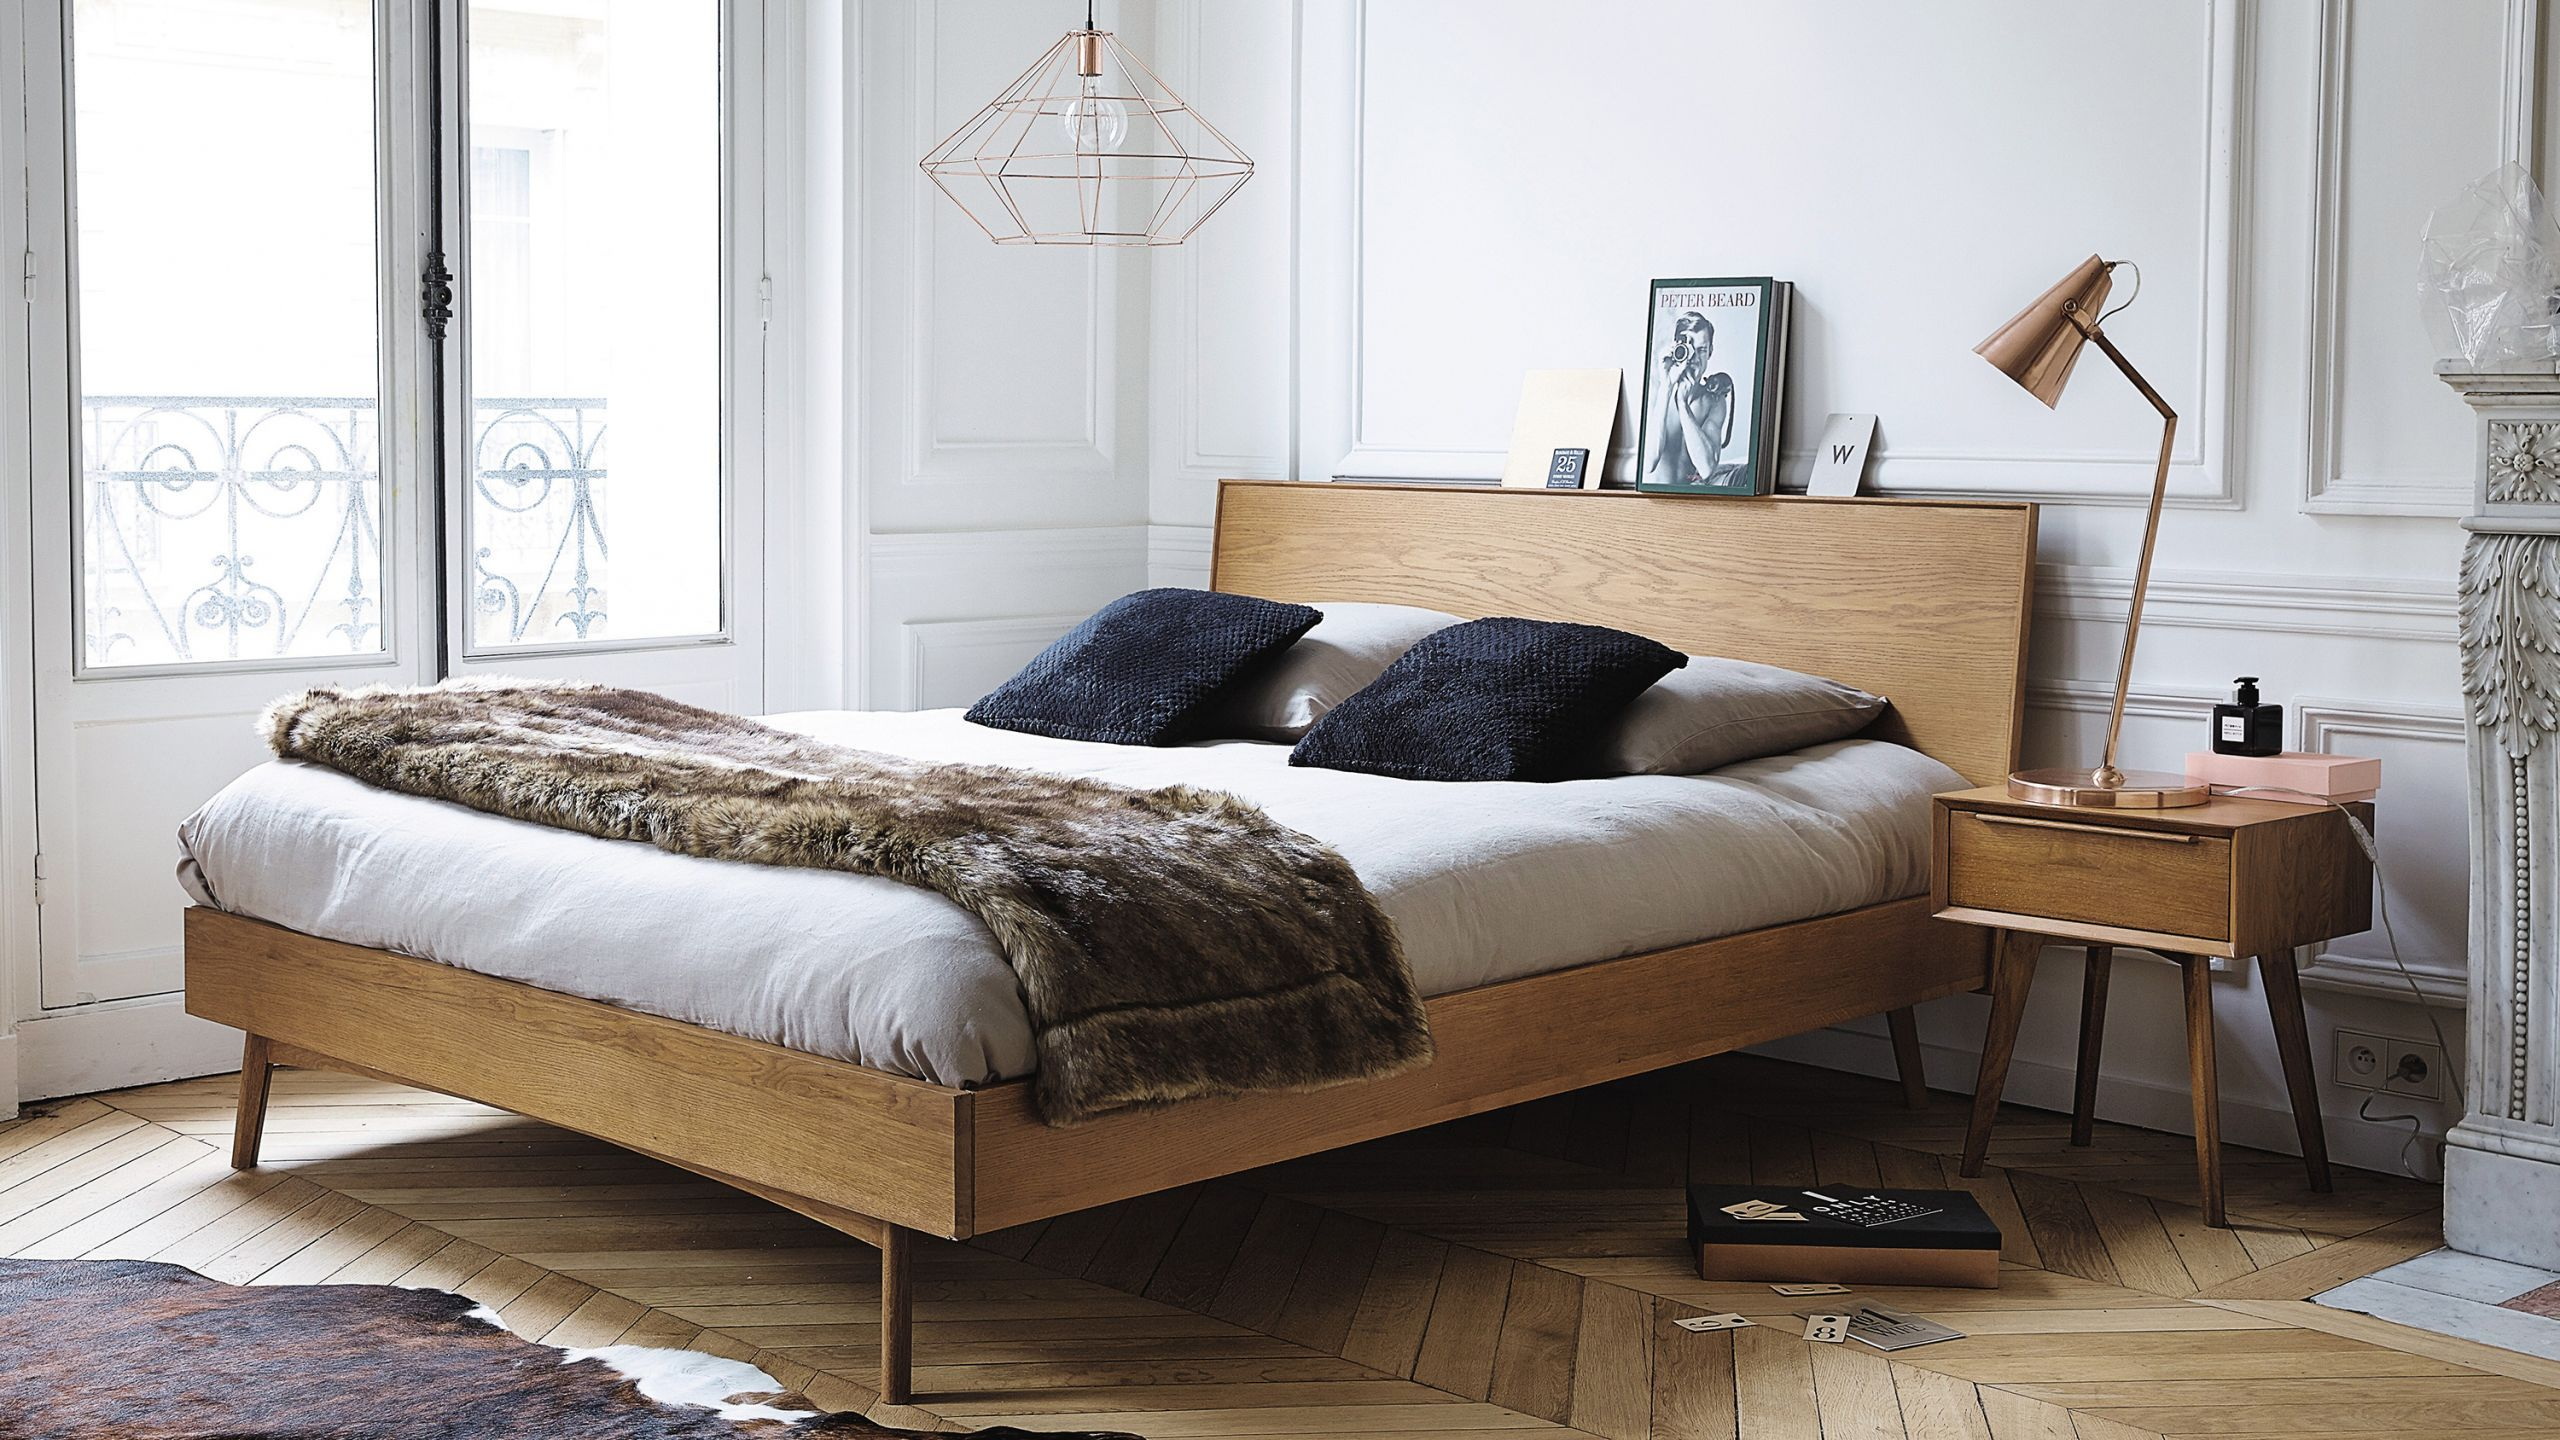 Scandinavian bedroom with wood